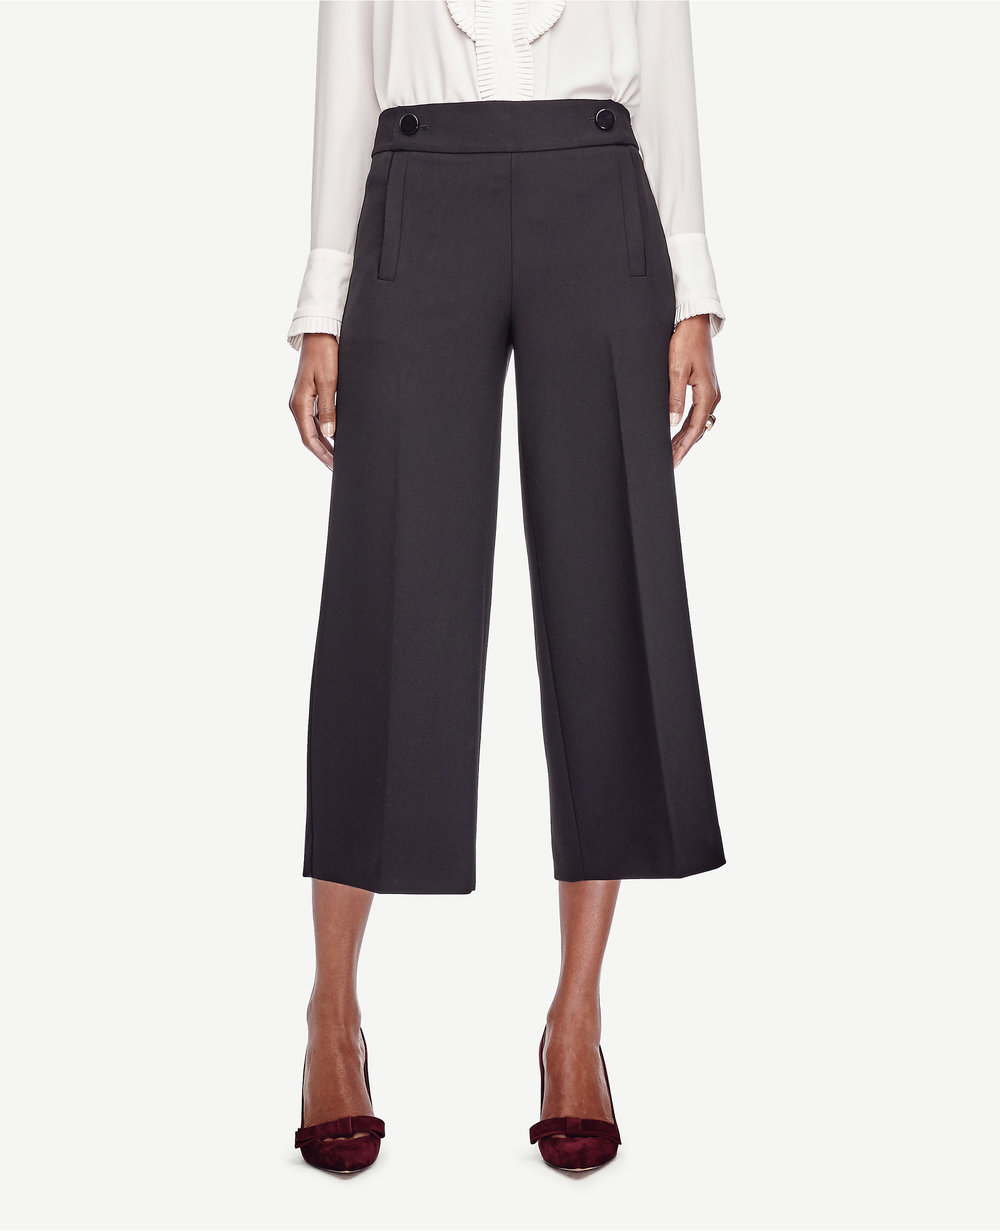 Mariner Wide Leg Crop Pants. Ann Taylor. $98.